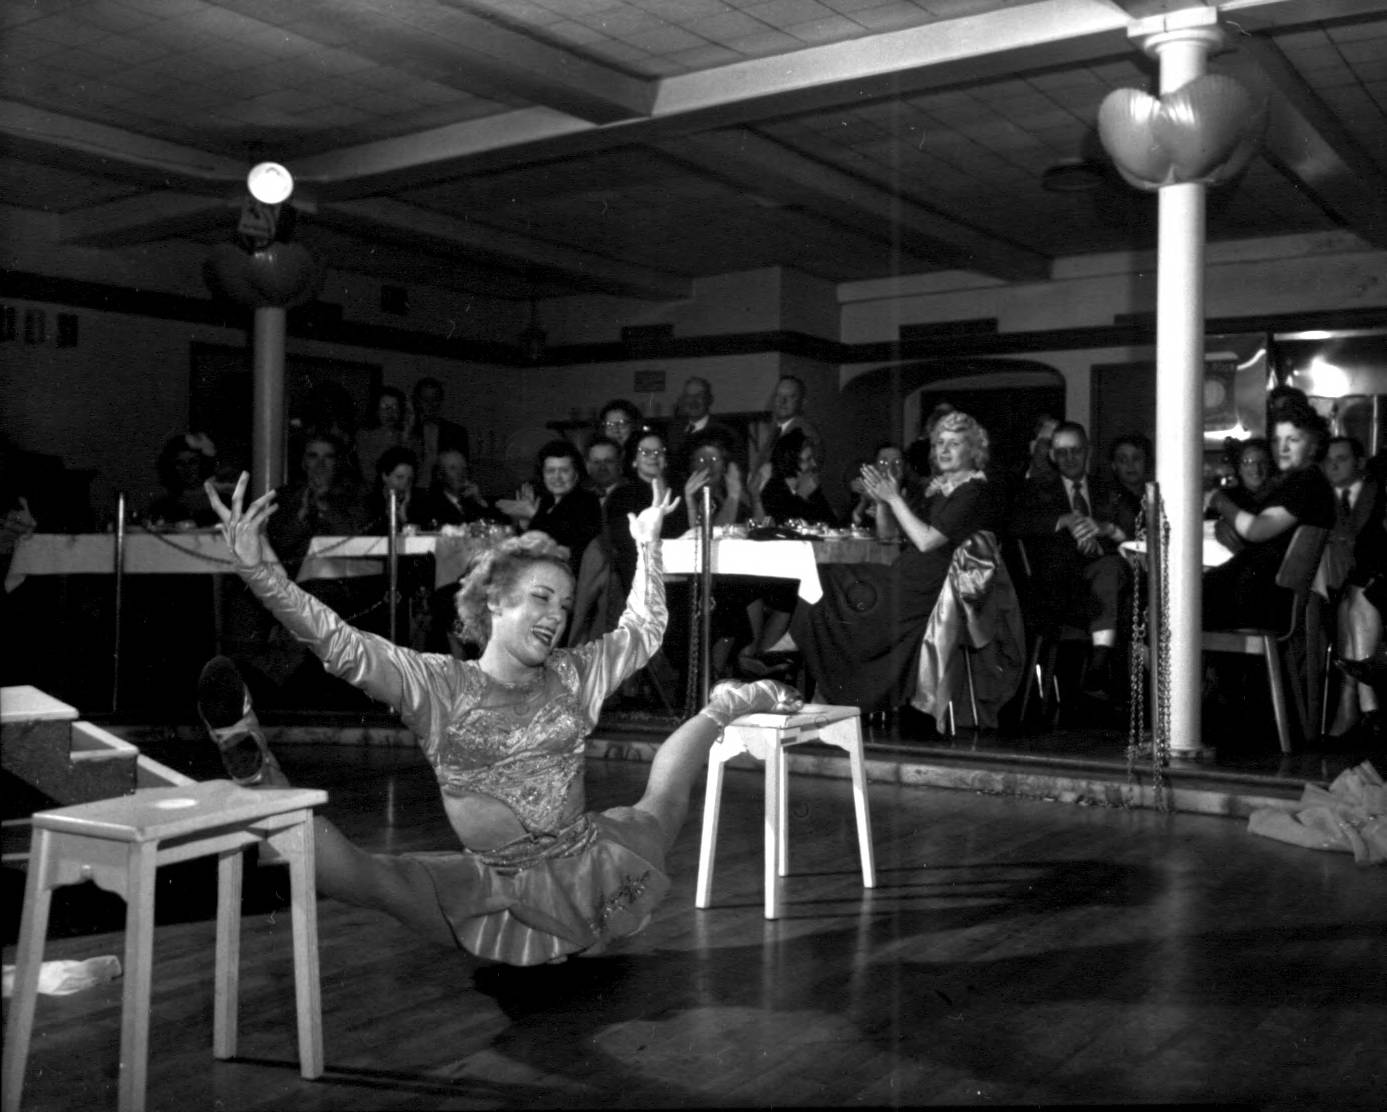 A woman contortionist performed on the dance floor with her legs elevated on two tables on either side of her body in a split formation. Her body is lower than her feet. Groups of people who are seated at tables around dance floor applaud her performance during the Halloween party sponsored by the Tacoma Athletic Commission at the Top of the Ocean.